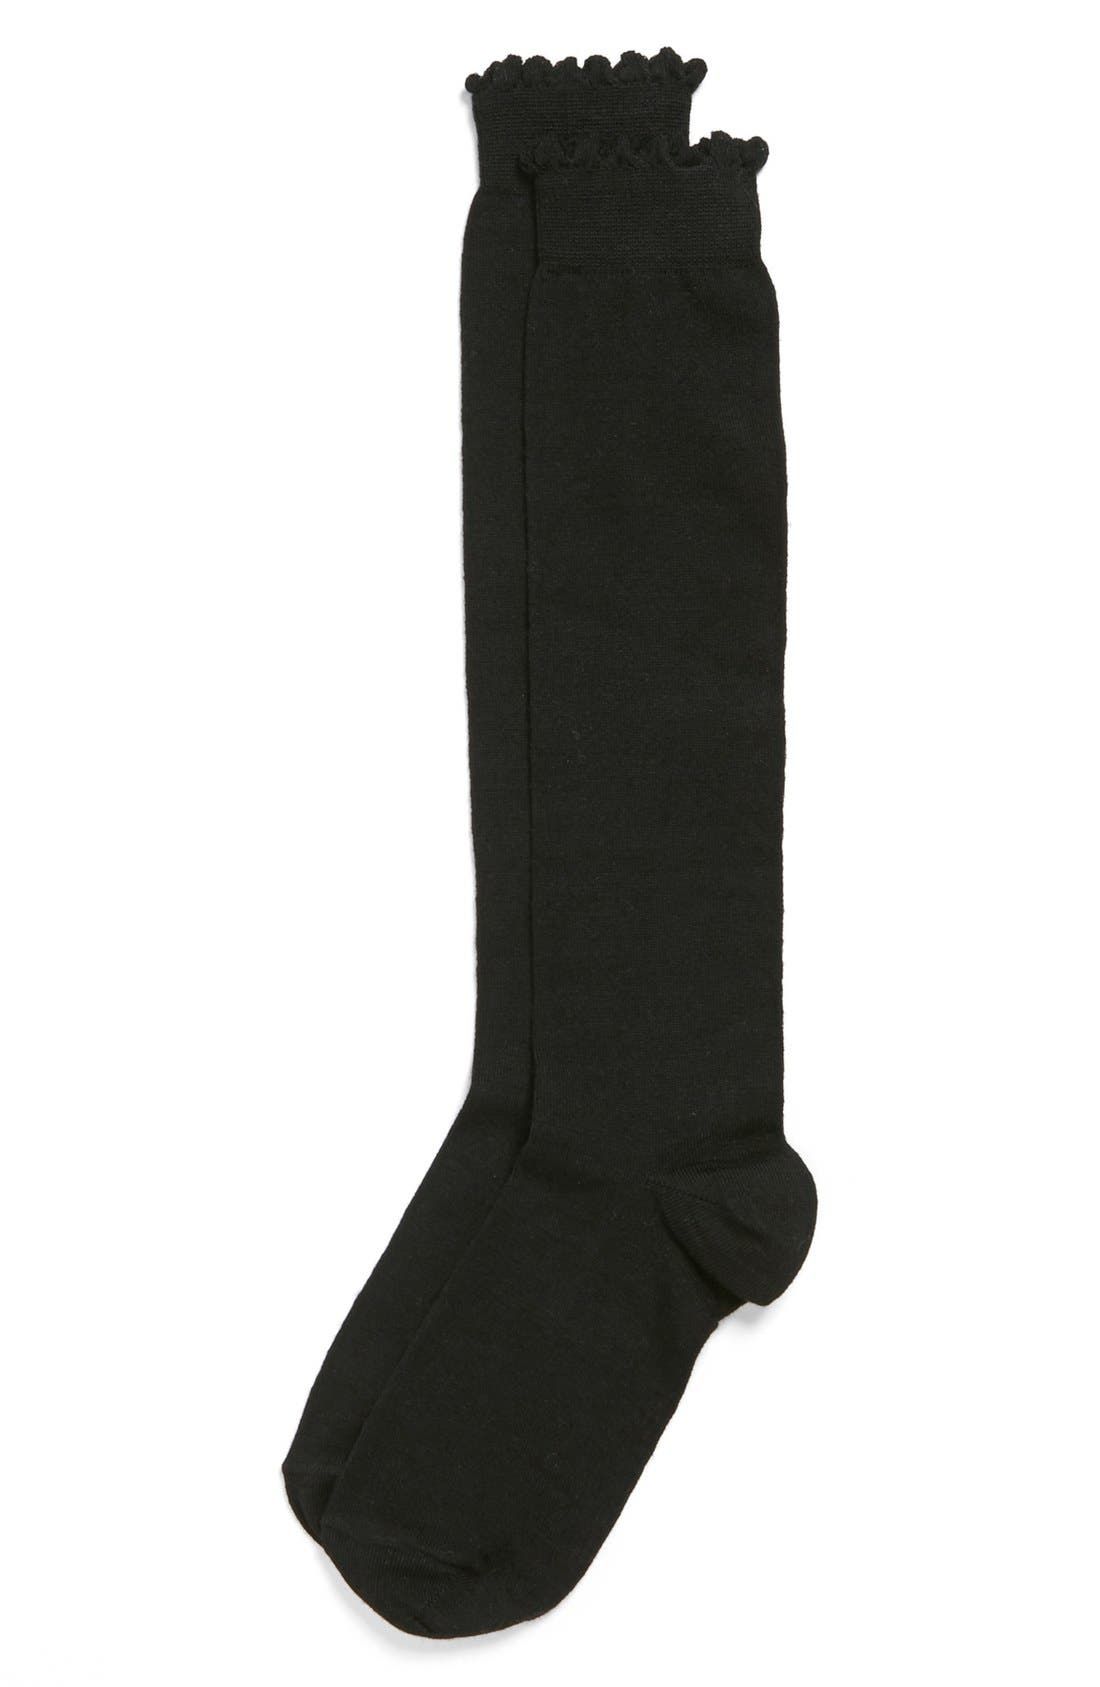 Alternate Image 2  - Nordstrom Flat Knit Merino Wool Knee High Socks